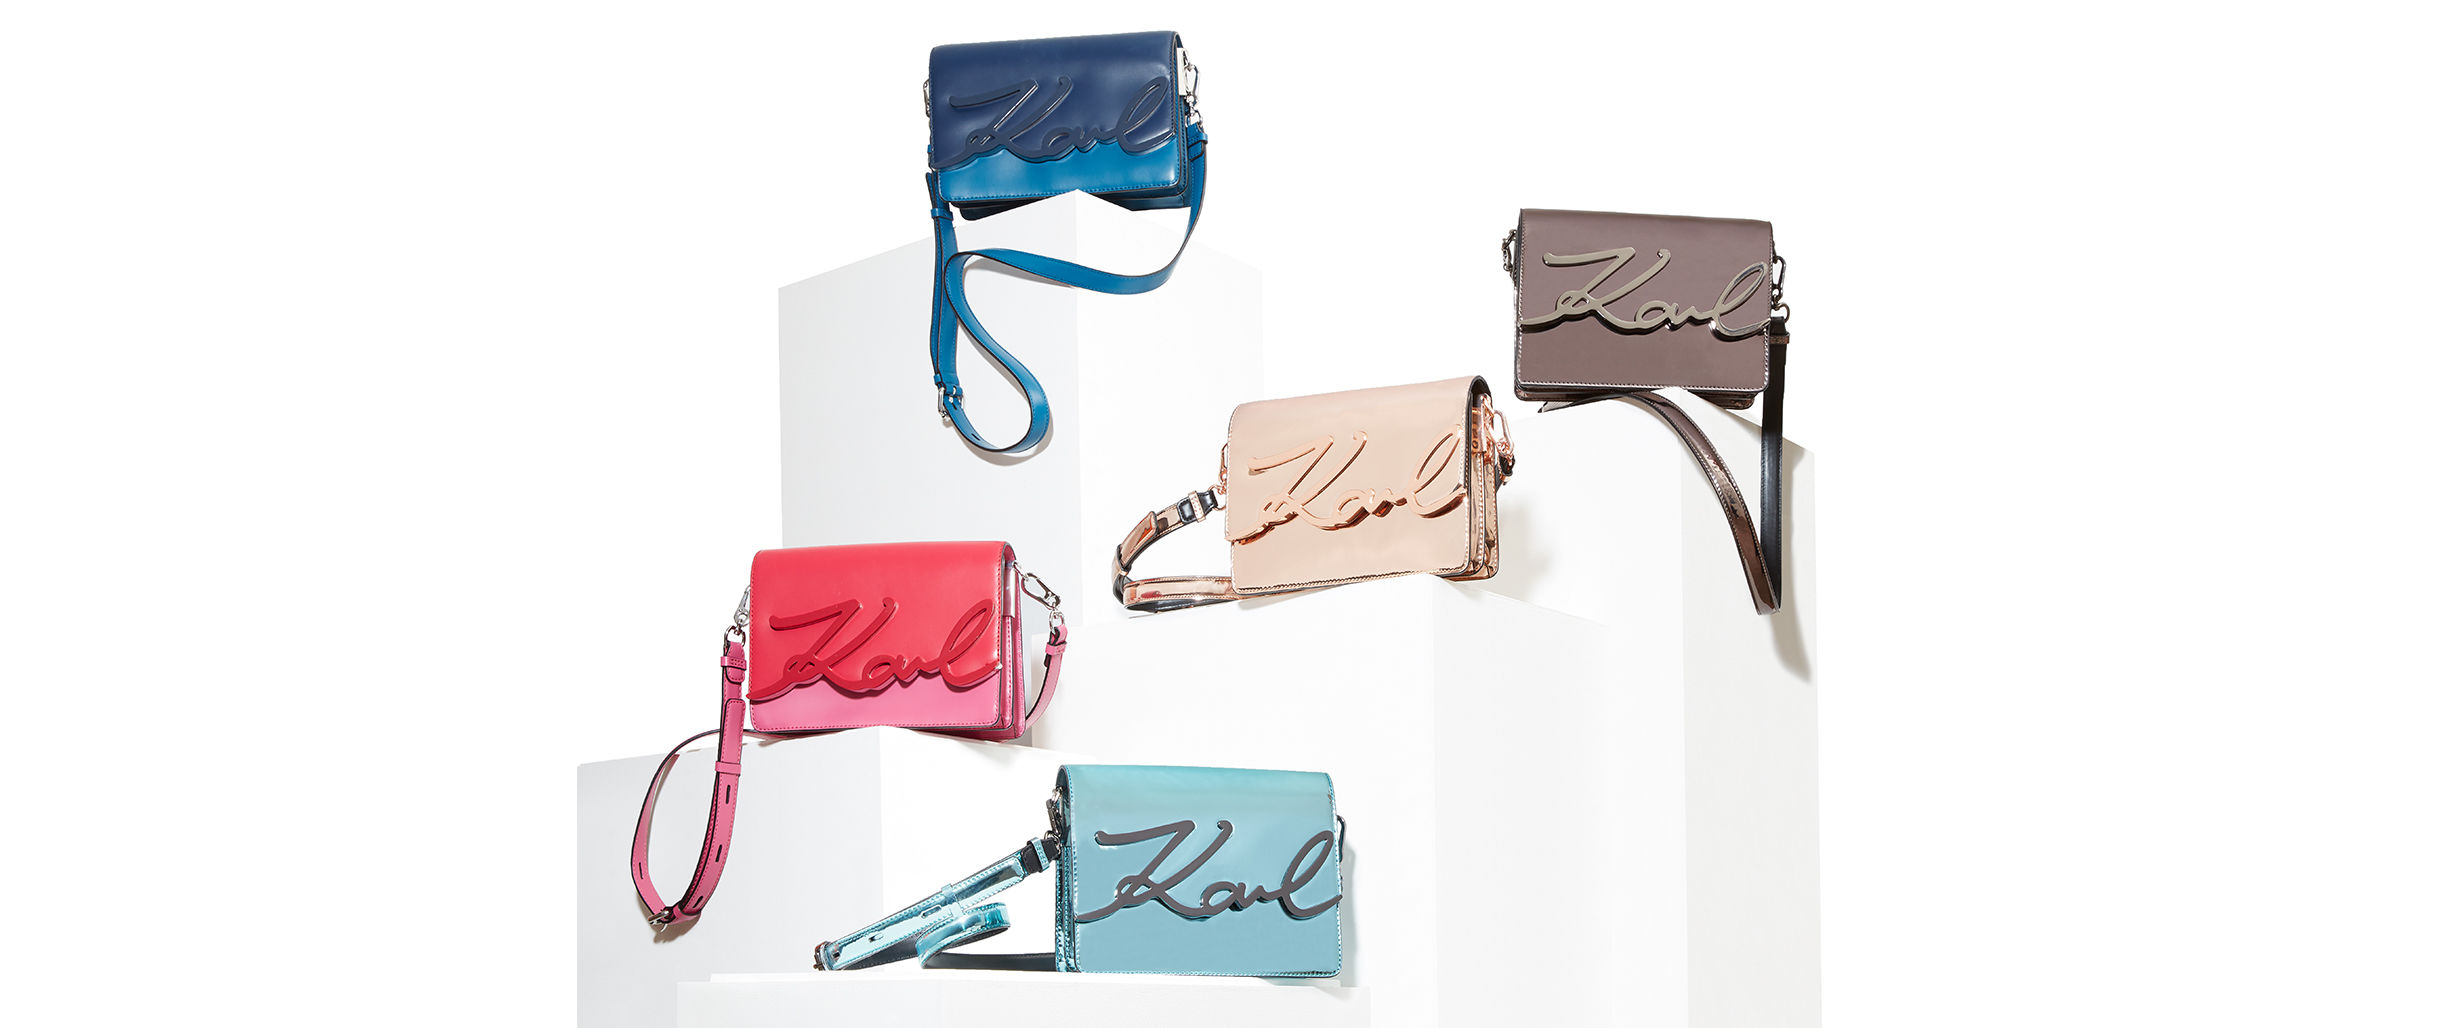 K/SIGNATURE GLOSS THE ICONIC HANDBAG WITH A HIGH-GLOSS FINISH SHOP NOW